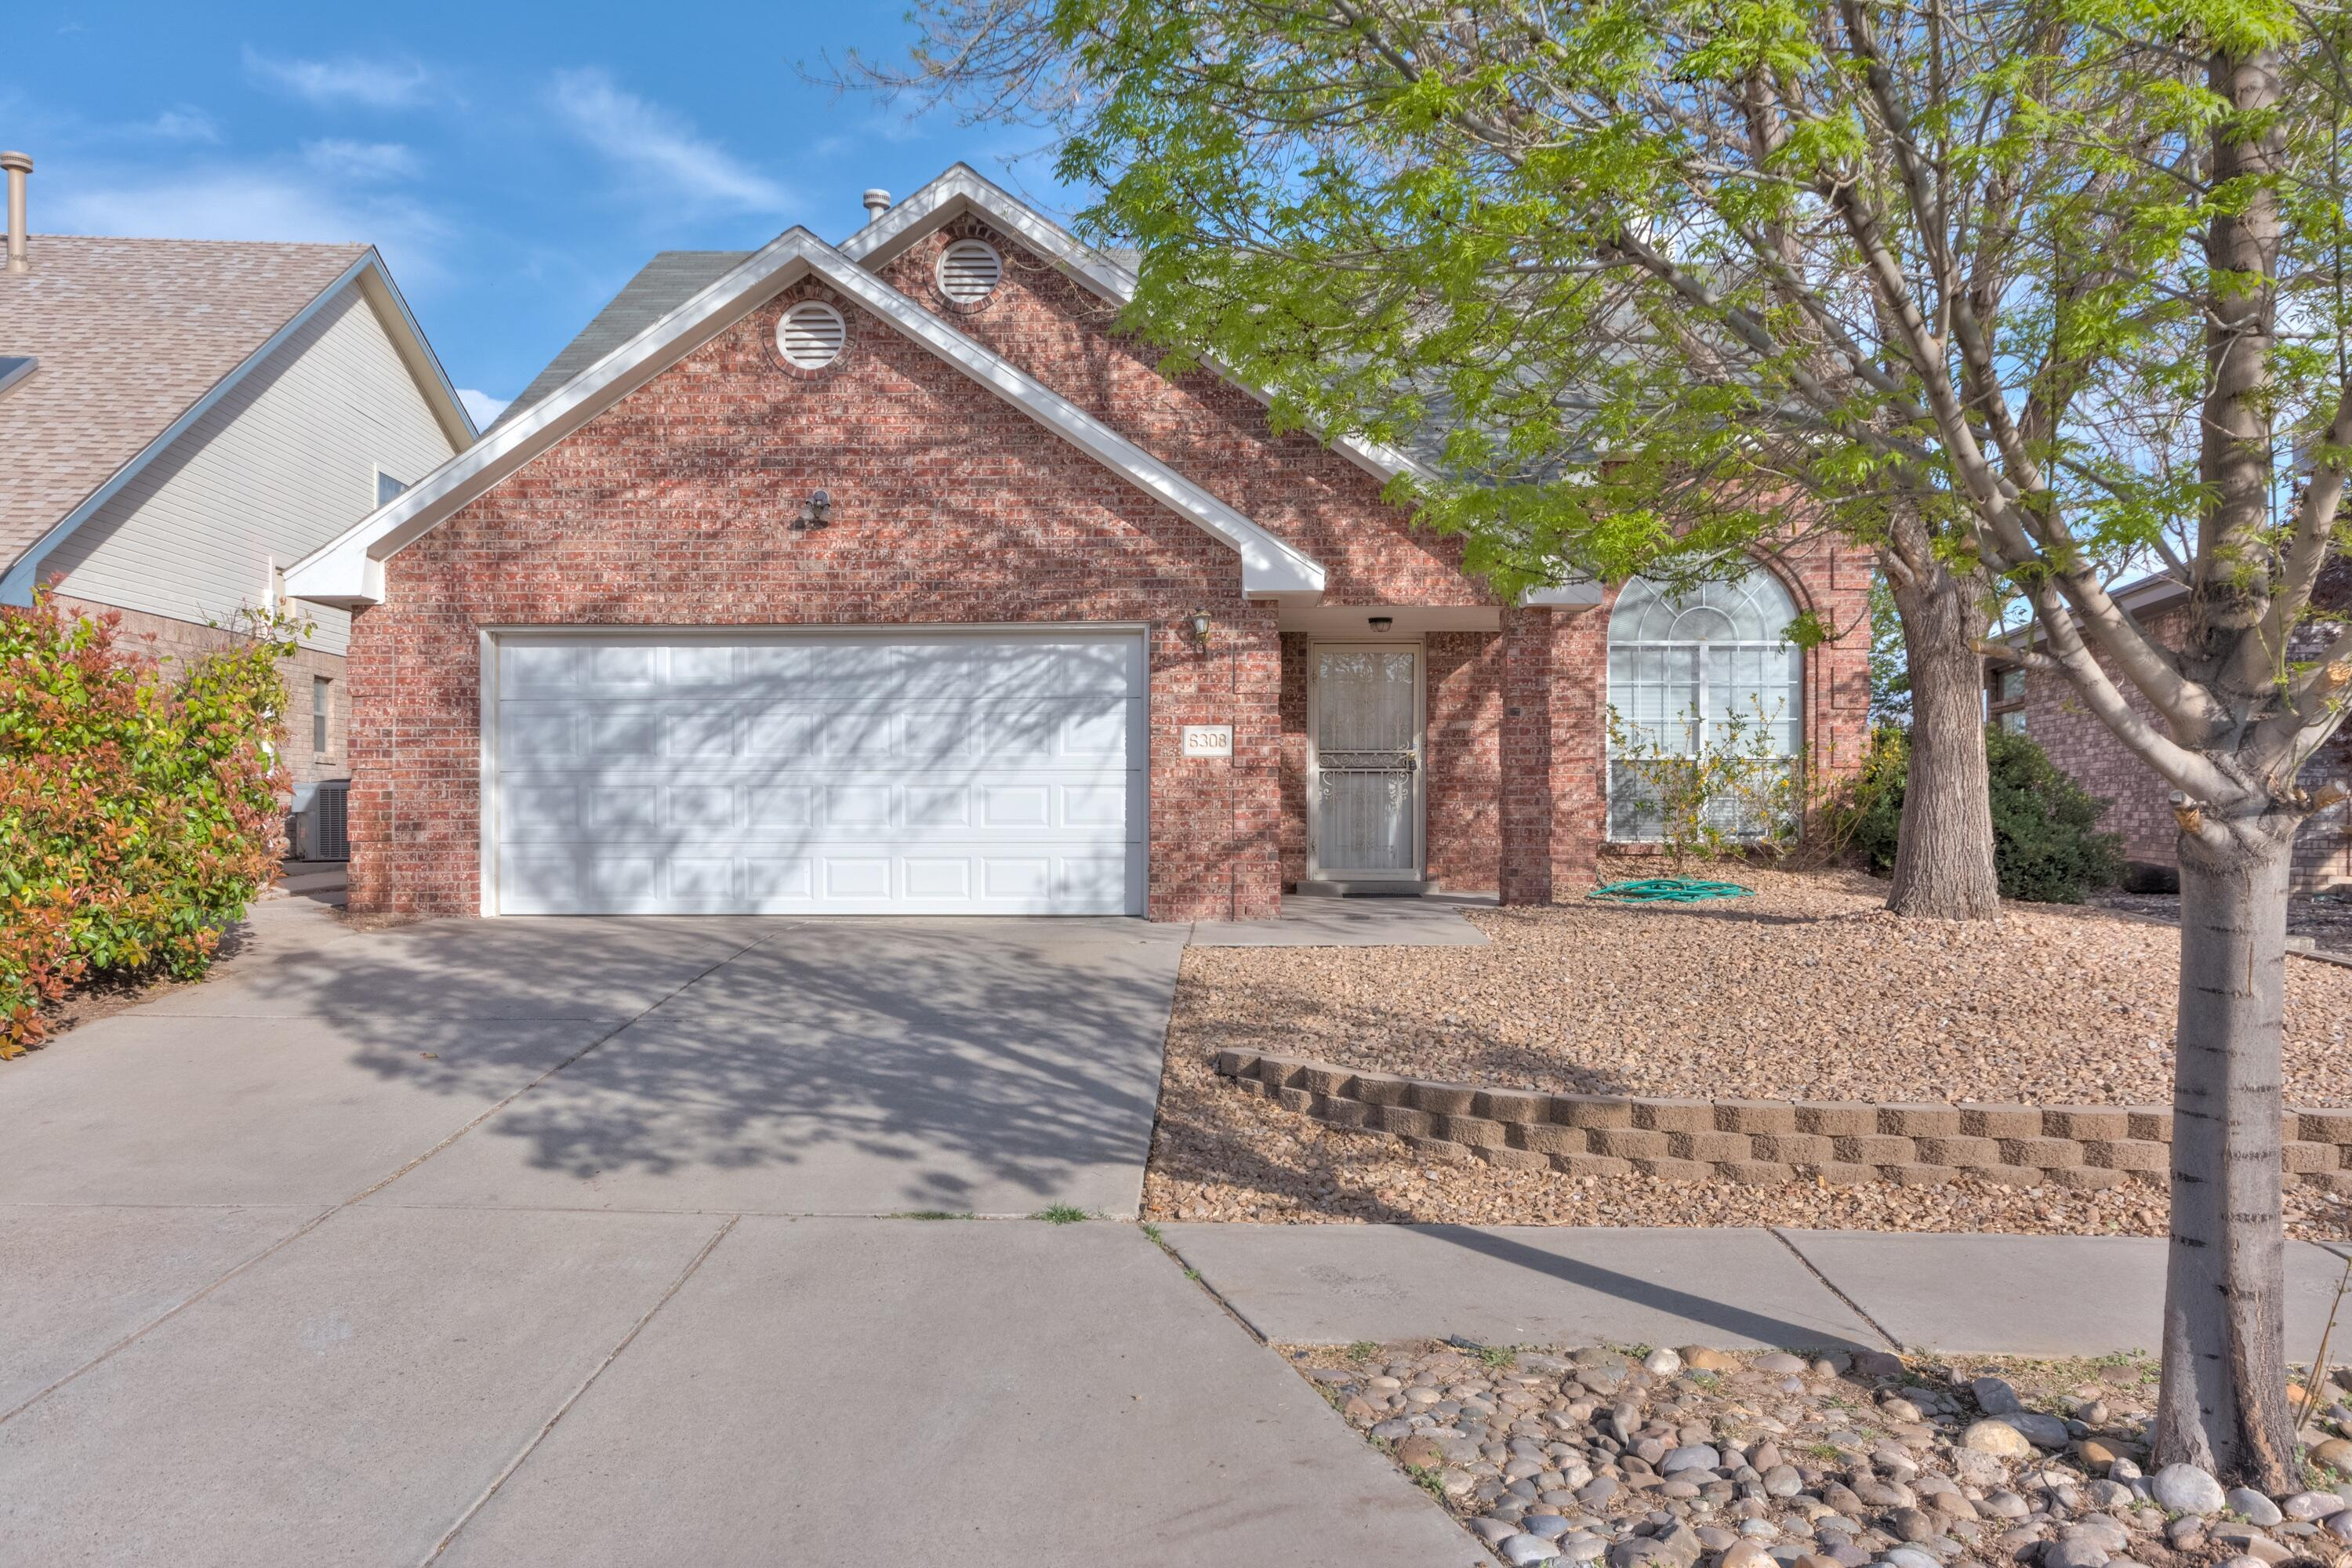 Fantastic 2-story brick home in Taylor Ranch boasts abundant light throughout the flowing floorplan. Downstairs offers neutral tile flooring throughout, gas log fireplace, stainless appliances and owned water softener system.  Upstairs has 2 bedrooms and loft/study space.  The sweet backyard has ample grass and trees, covered patio and deck for enjoying the views.  Convenient location is walking distance to Mariposa Basin Park and close to shopping and dining.  Schedule your showing today and see all the amazing things this home has to offer!